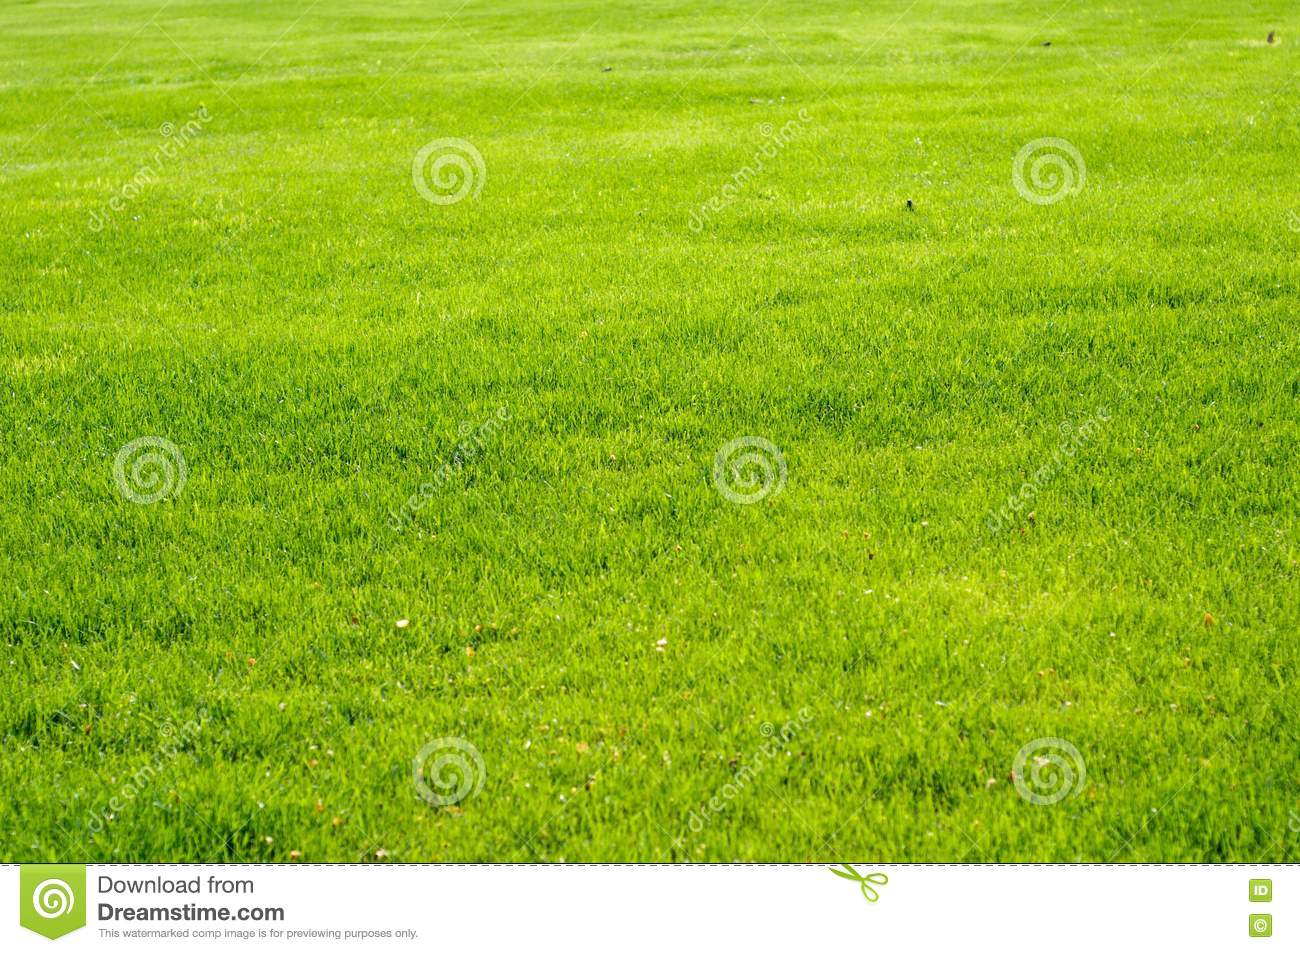 Fresh Grass Stock Photo Royalty Free Stock Image - Image: 13902206: www.dreamstime.com/royalty-free-stock-image-fresh-grass-stock-photo...